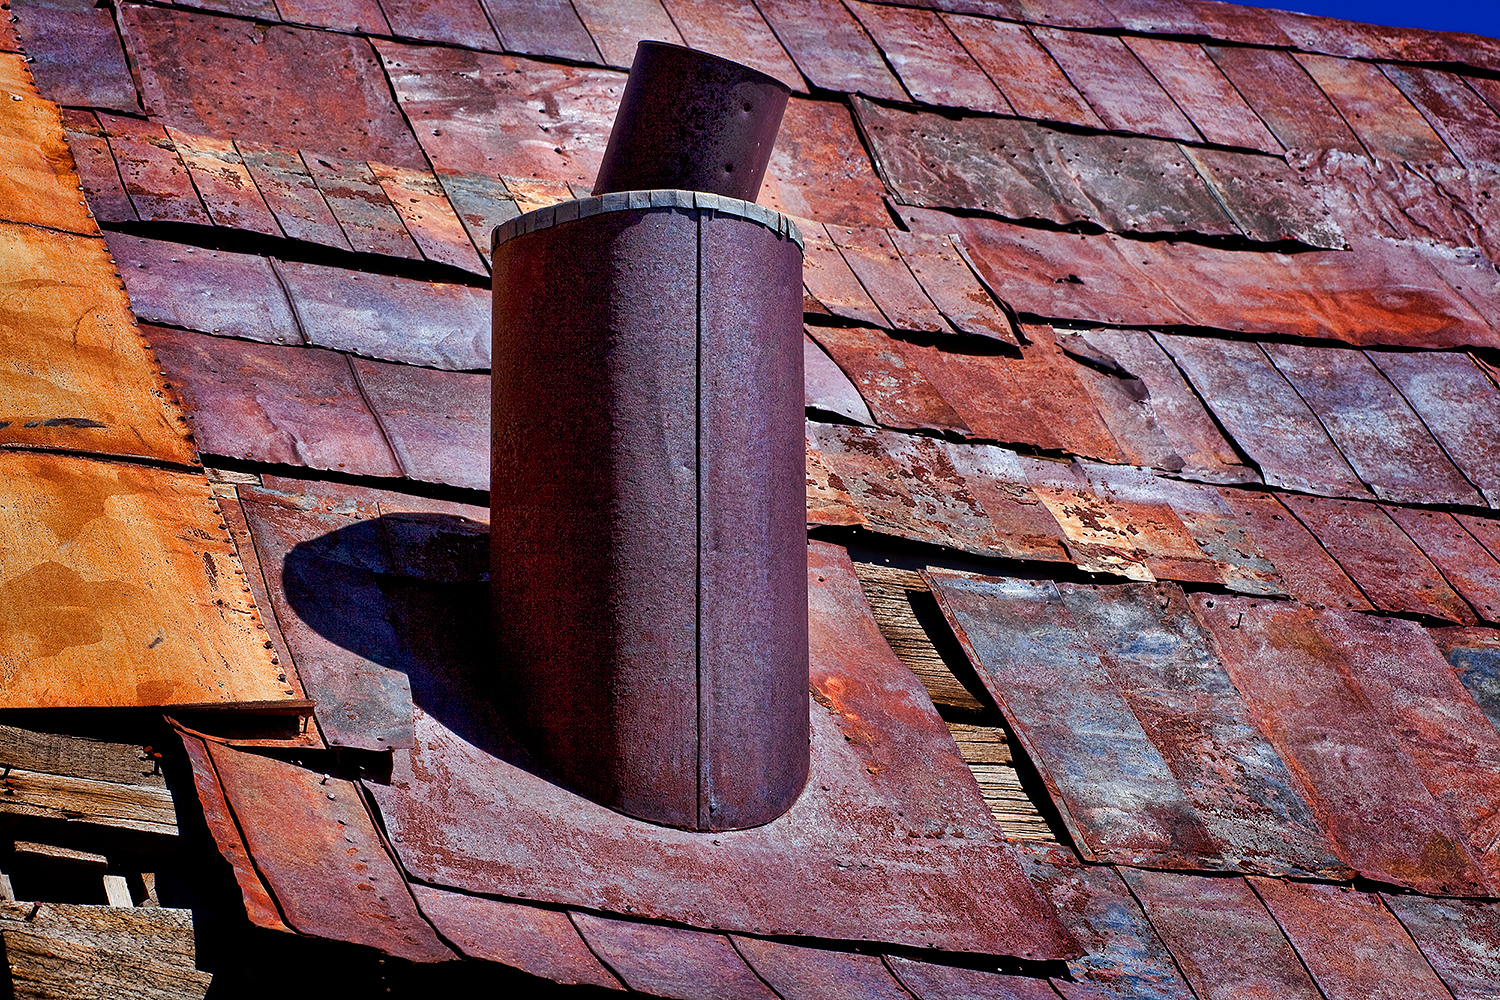 Rustic beauty of a rusty tin roof with smokestack on an old house at Bodie Ghost Town.